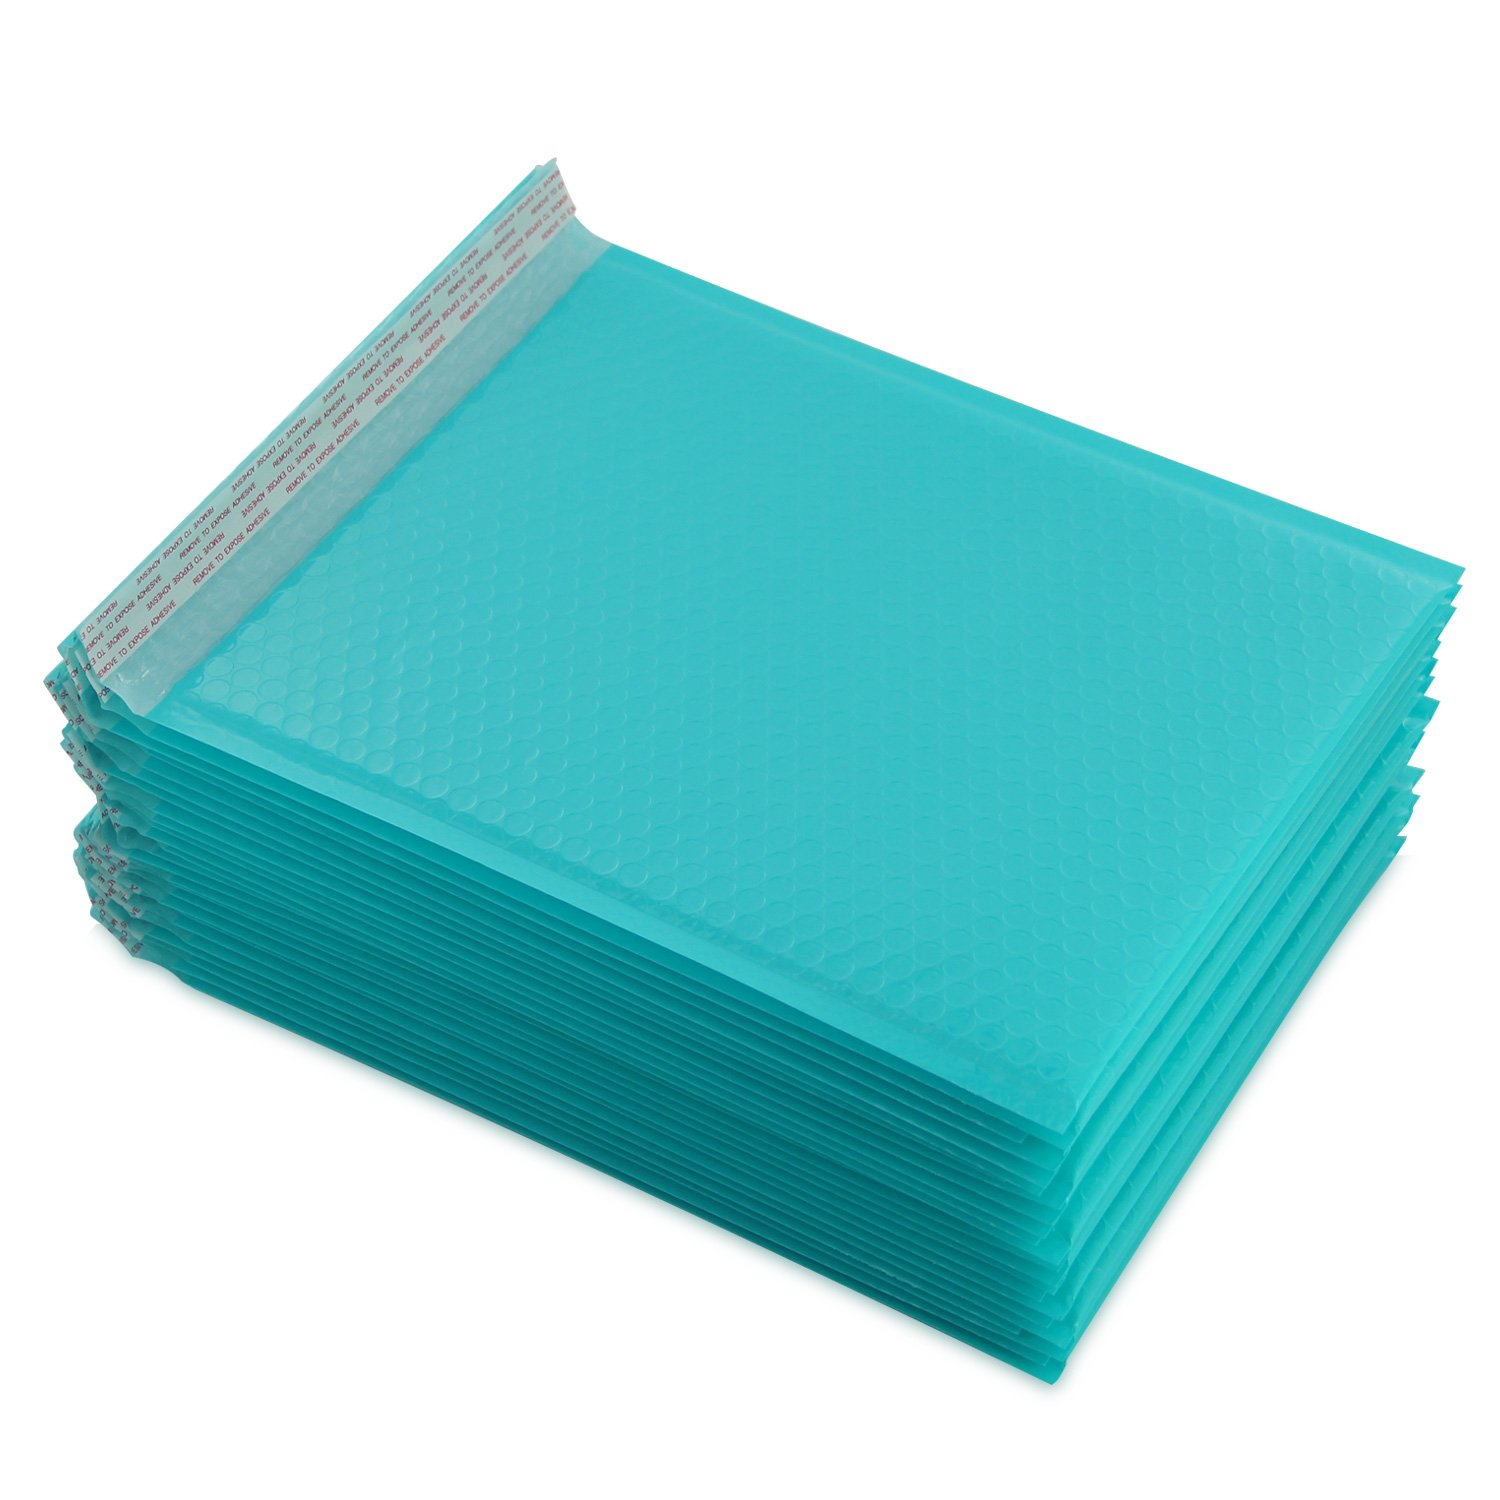 Yomuse D/1 Packaging Self-Seal Padded Bubble Plastic Mailers Postage Bags 190mm x 260mm 40mm Lip, Fits CD DVD, Pack of 50, Teal